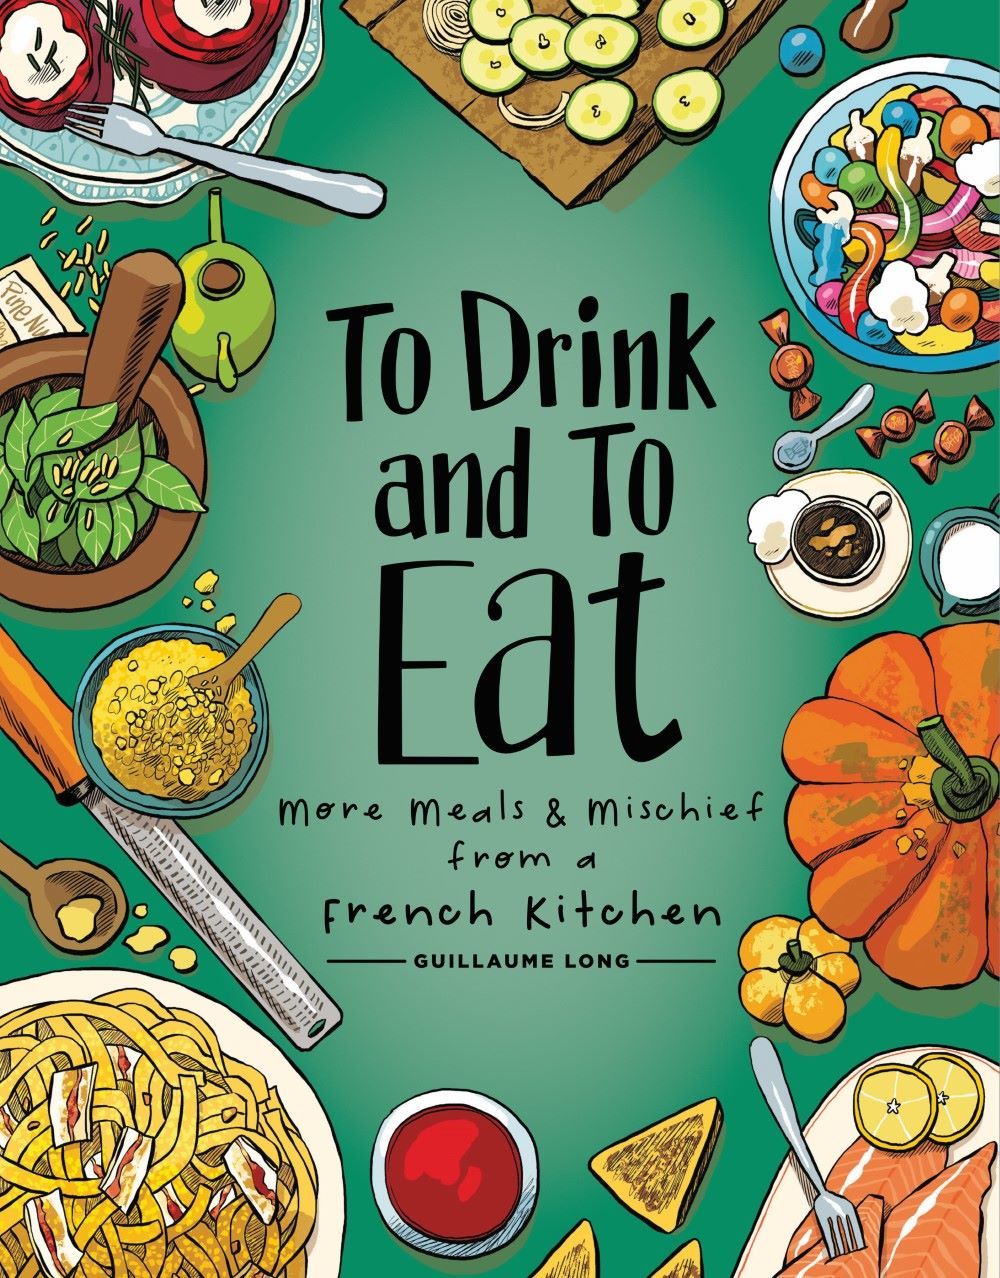 DRINKEATV2-REFERENCE-001 ComicList Previews: TO DRINK AND TO EAT VOLUME 2 HC